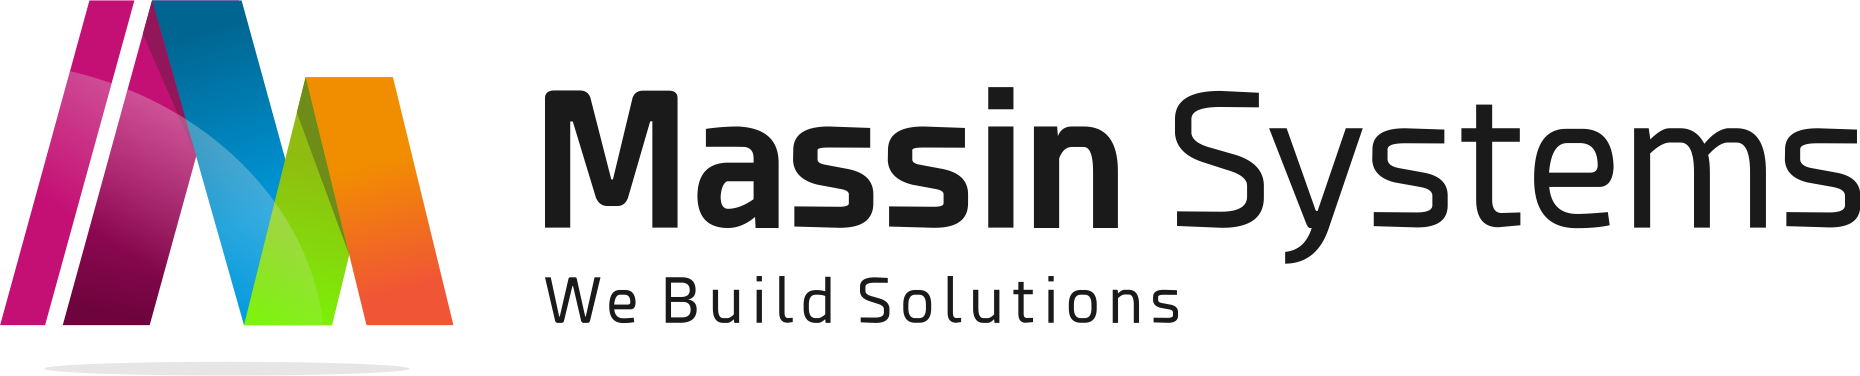 Massin Systems Shirts Store